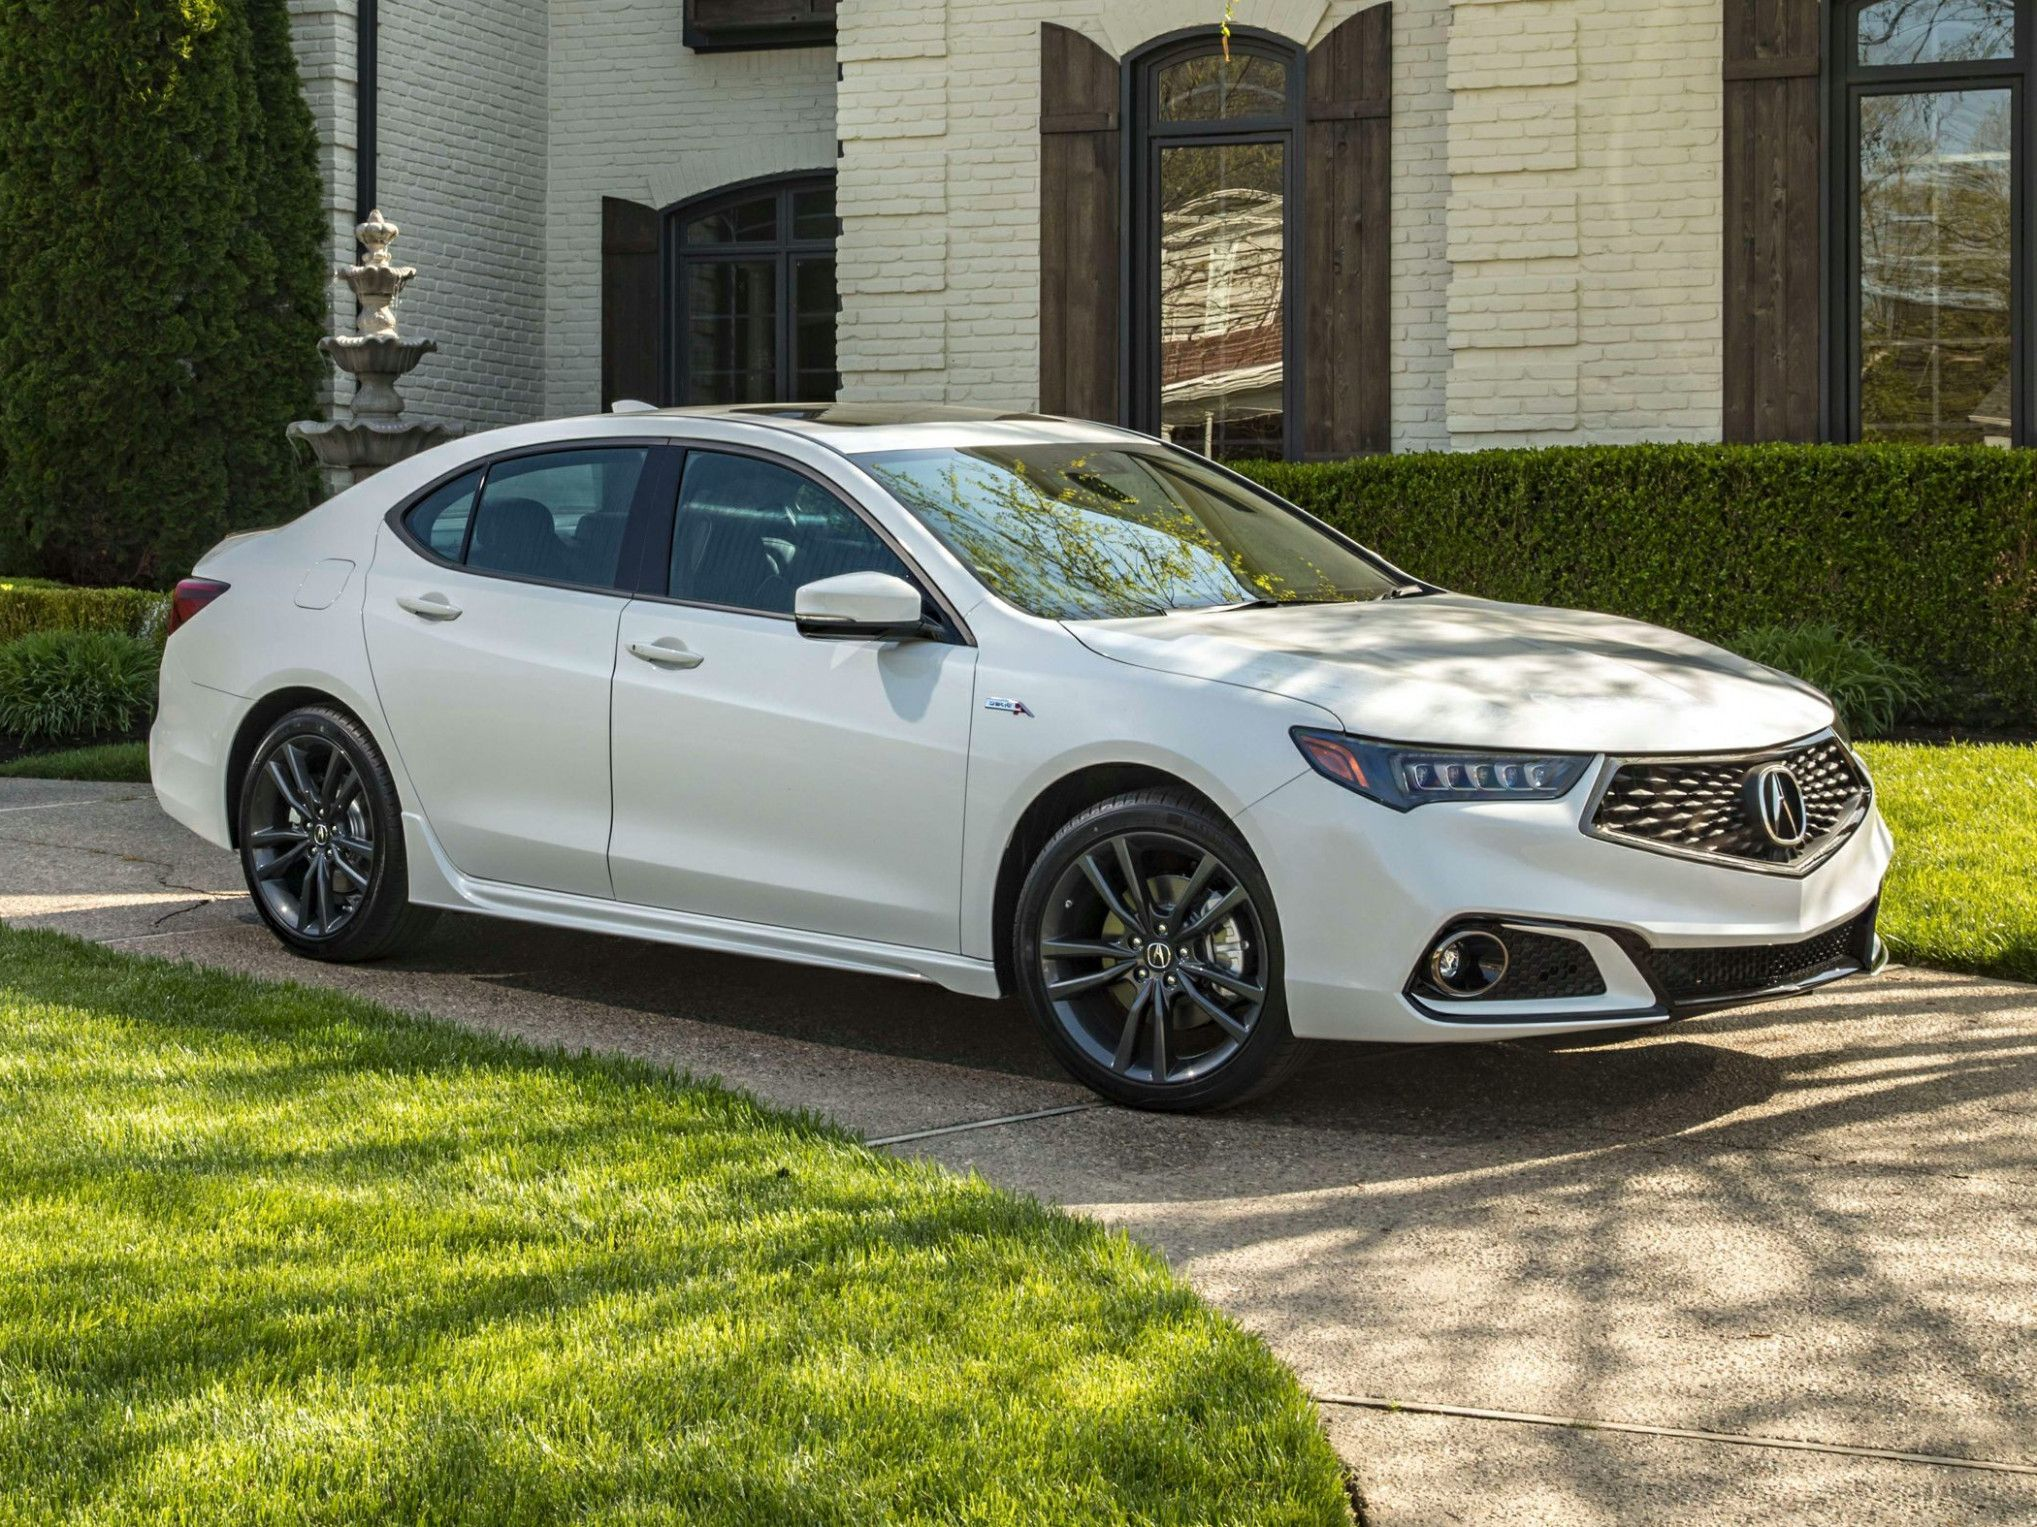 10 Facts That Nobody Told You About 2020 Acura Tlx A Acura Tlx Acura Sedan Acura